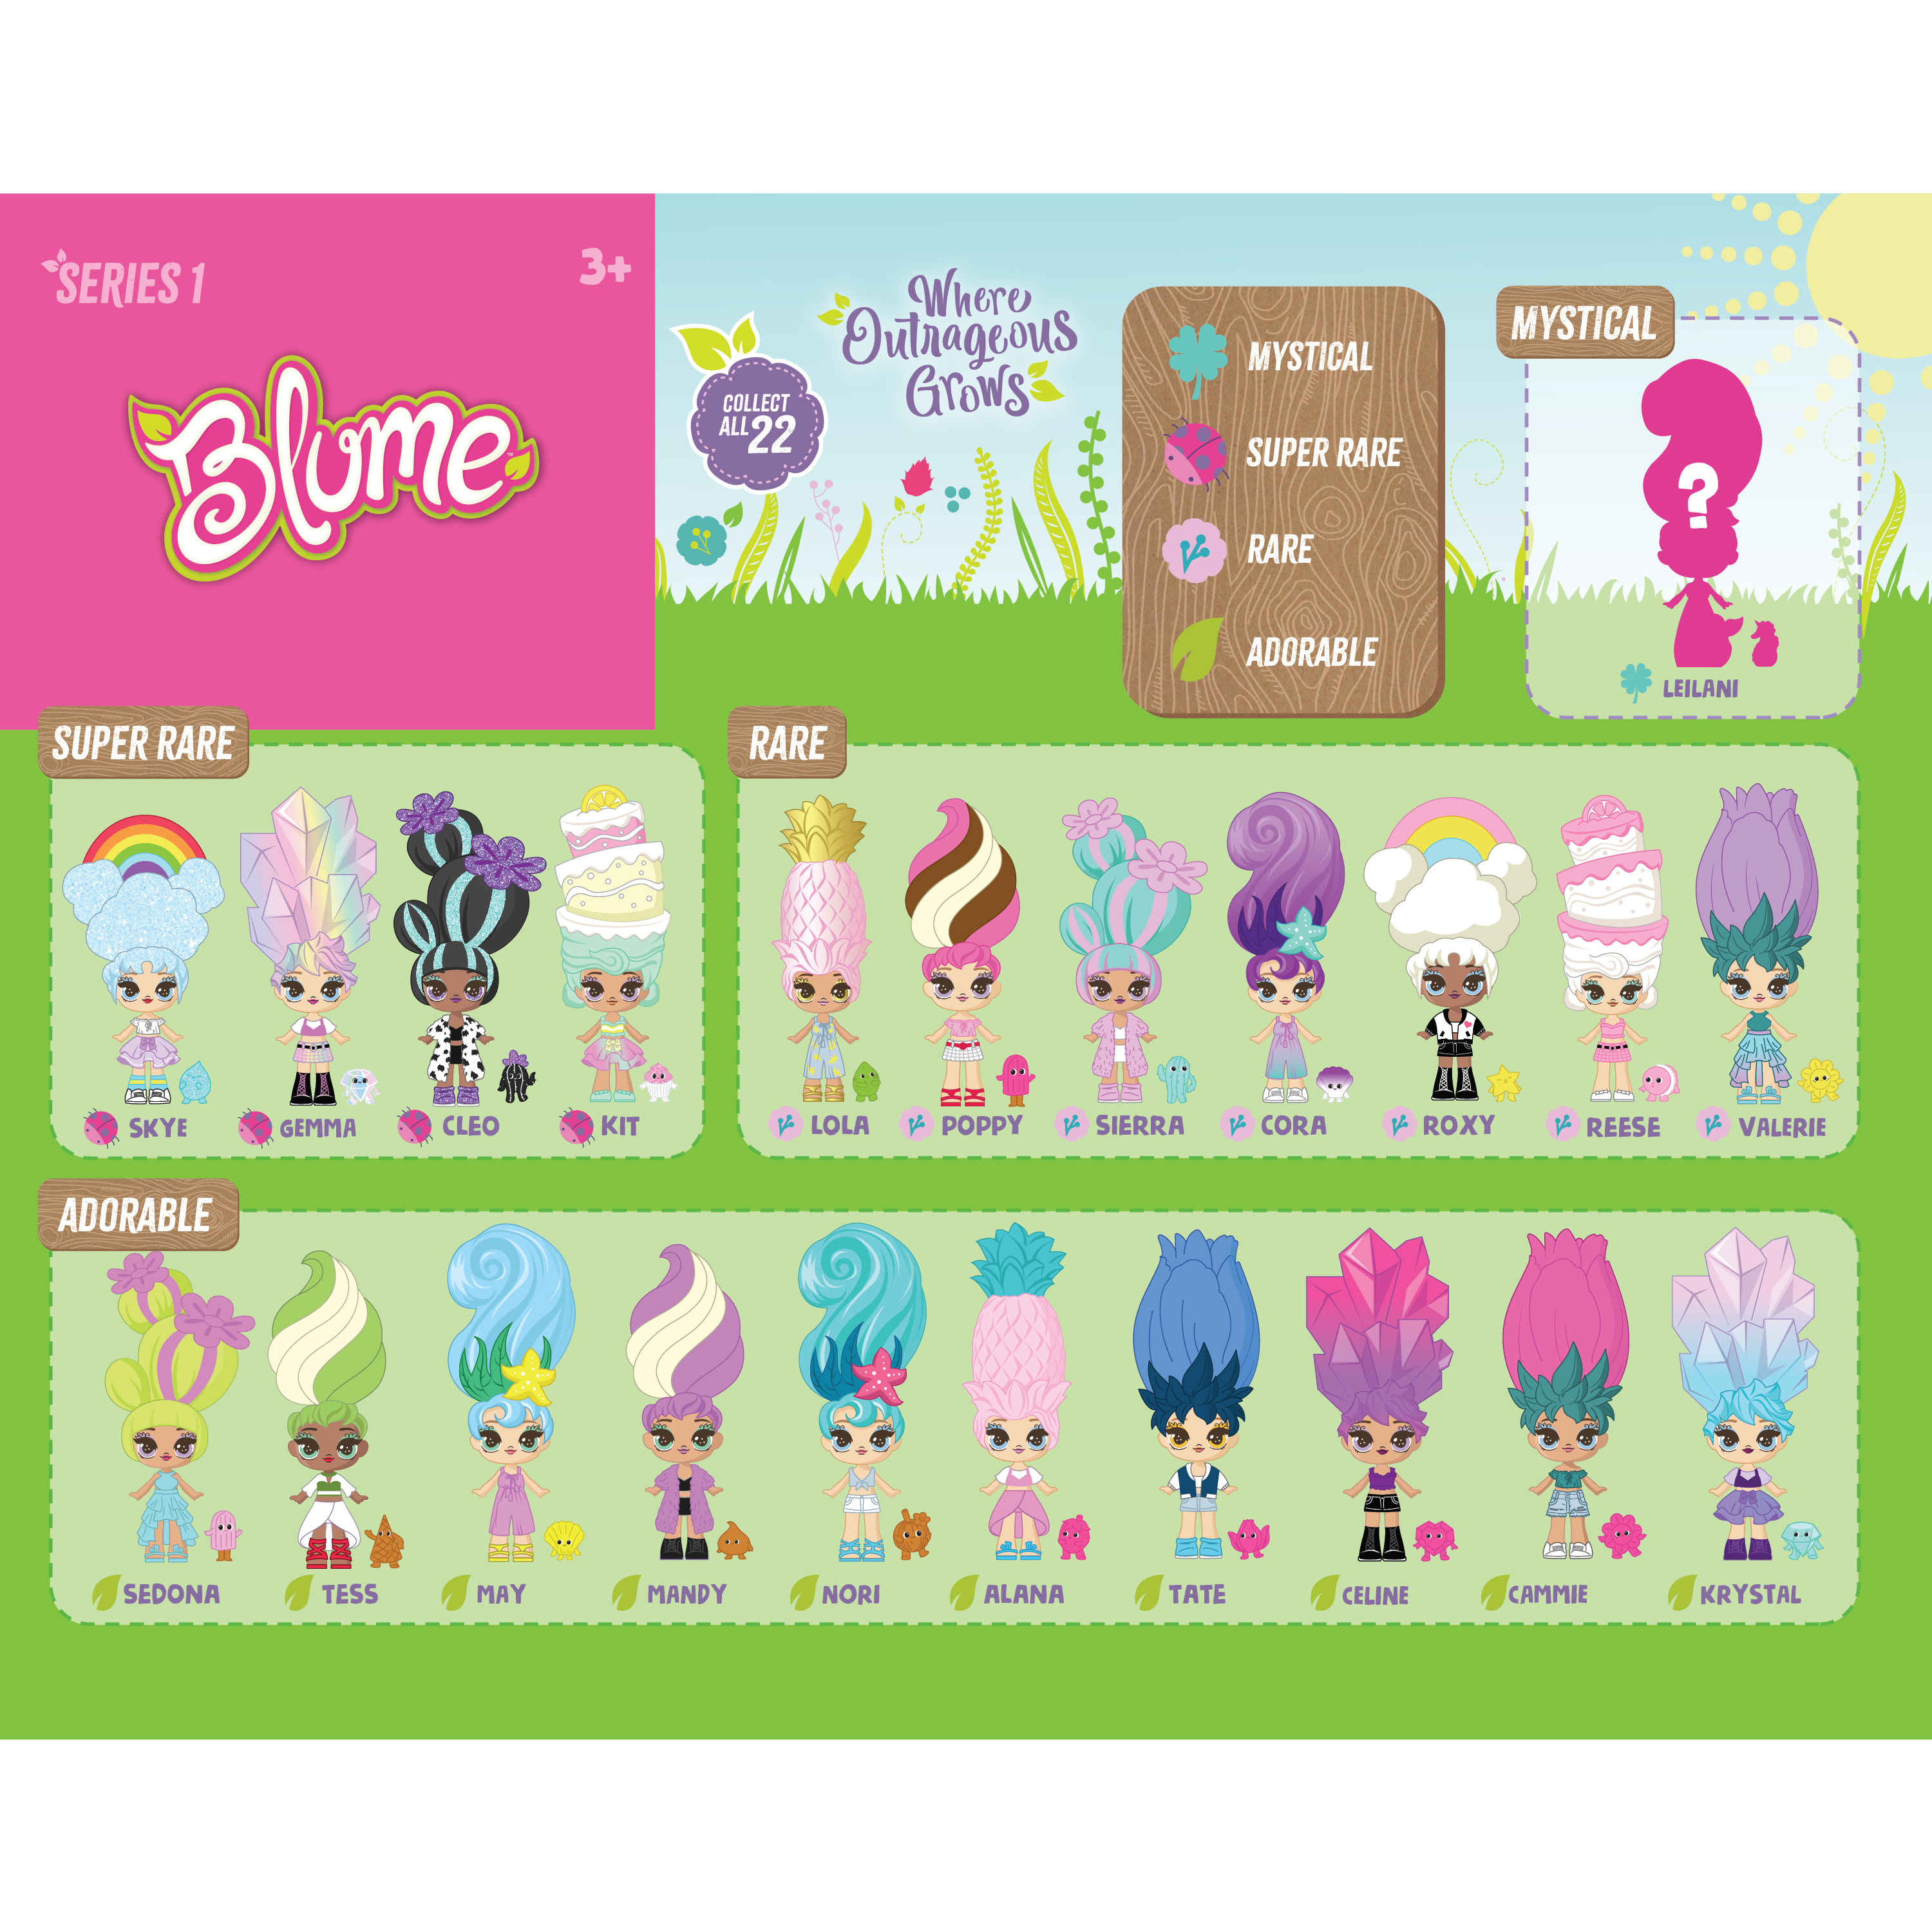 02267_Blume_9_CharacterMap_4_.png